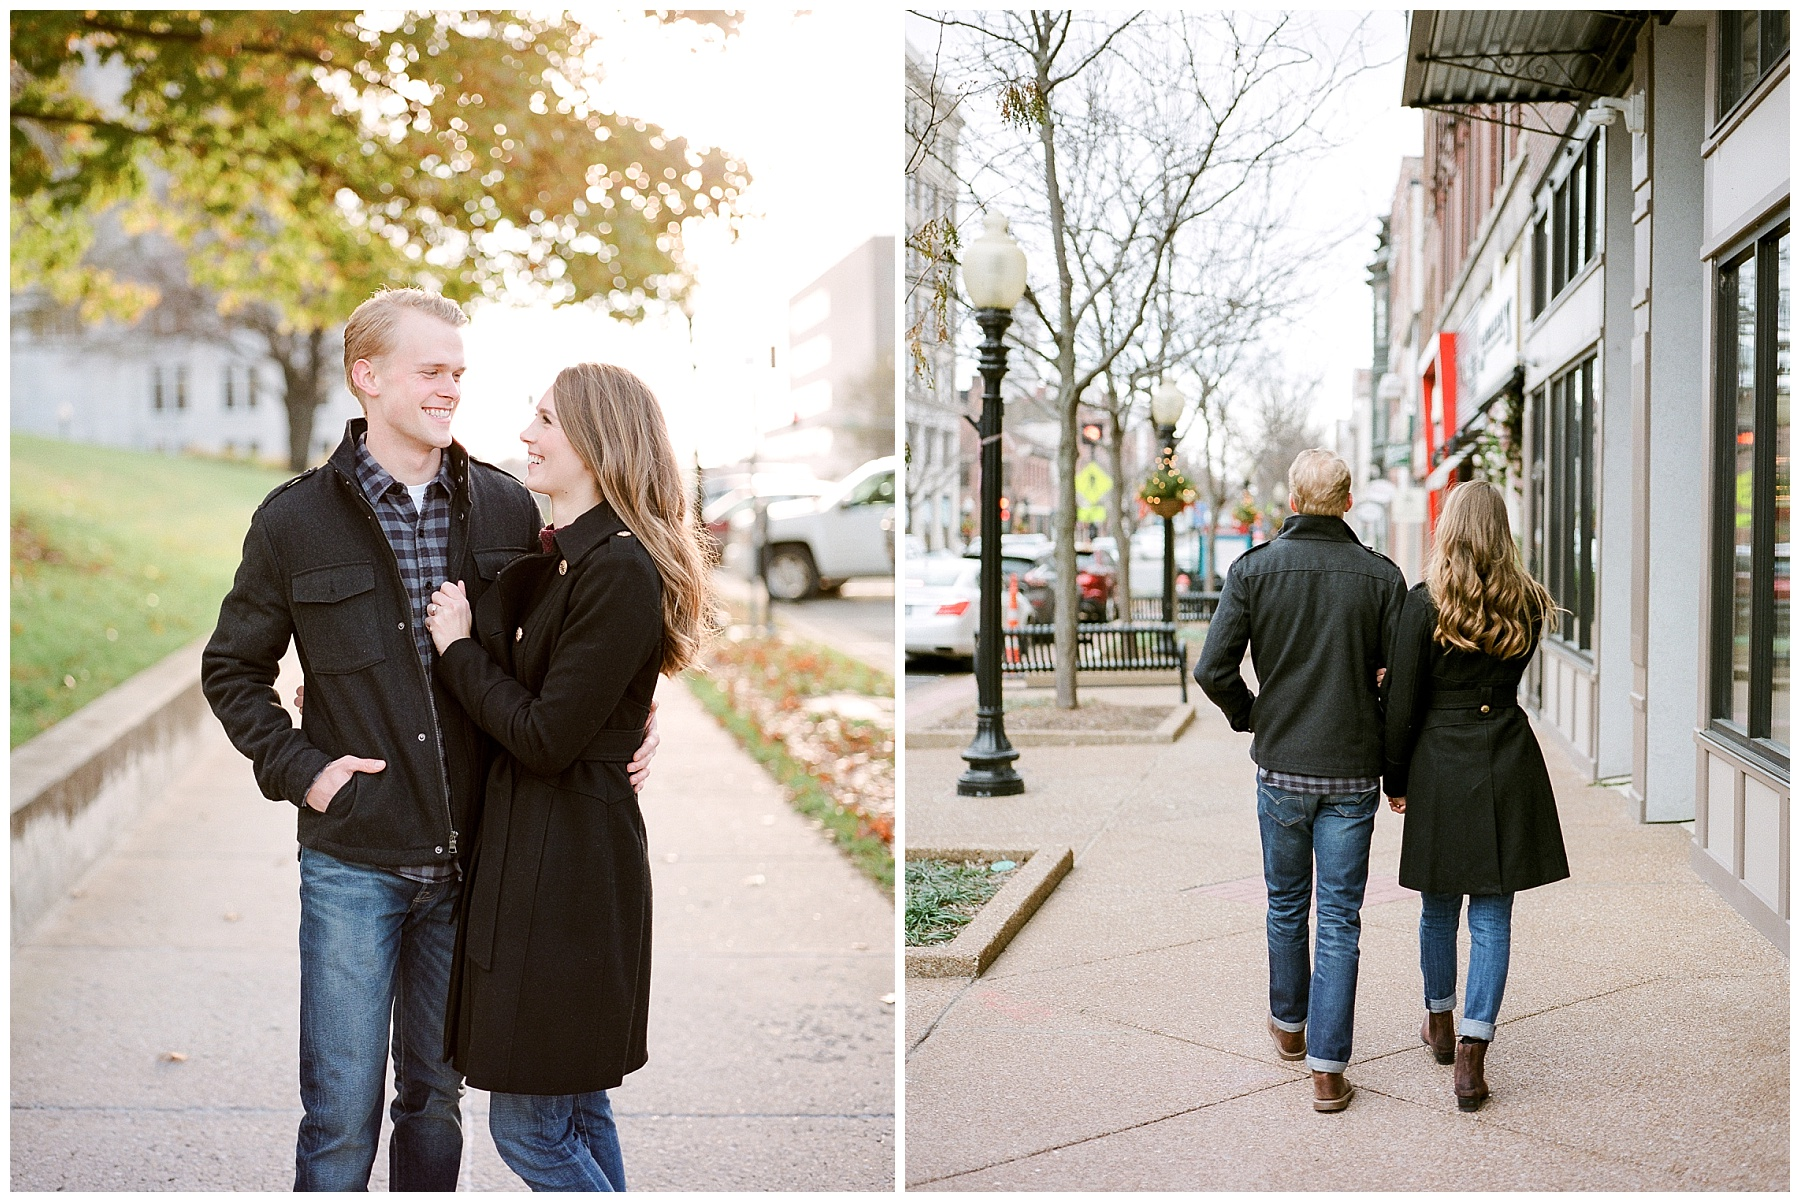 Downtown Jefferson City Engagement Session in Winter at Old Shoe Factory by Kelsi Kliethermes Photography Kansas City Missouri Wedding Photographer_0002.jpg